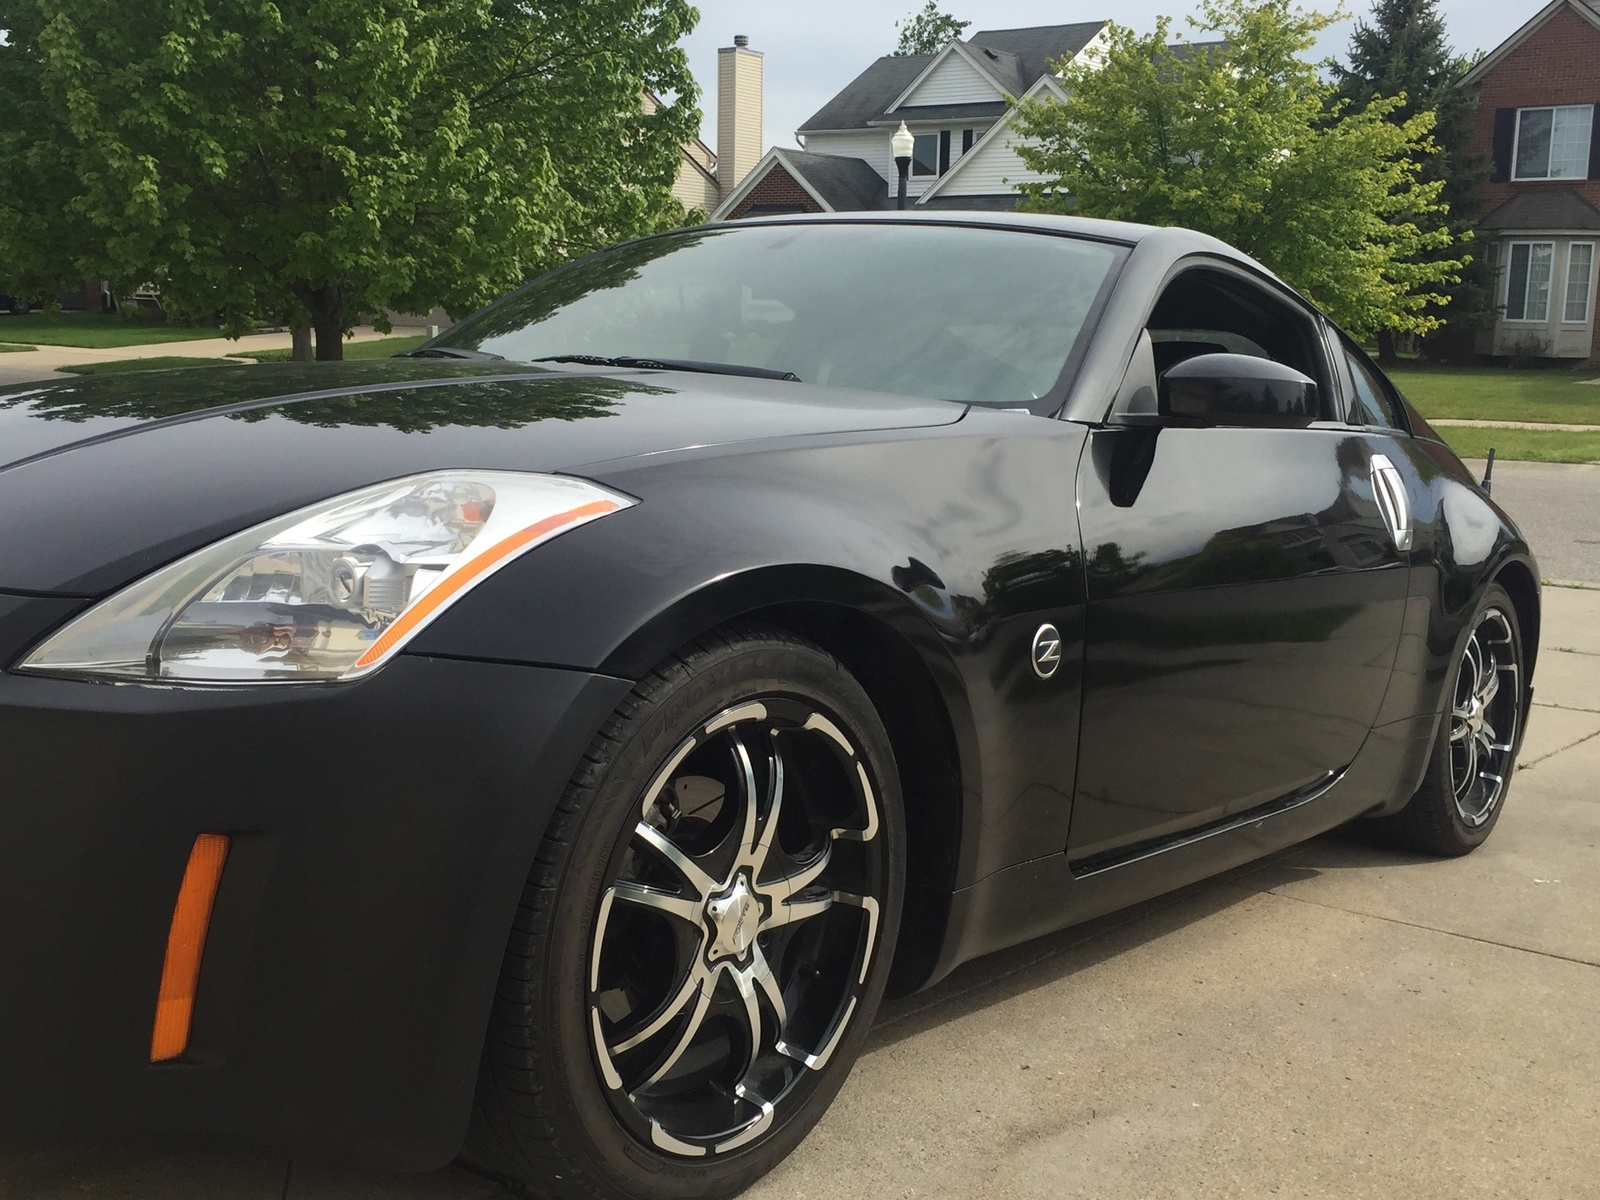 nissan 350z questions - i have a 2004 nissan 350z it's an